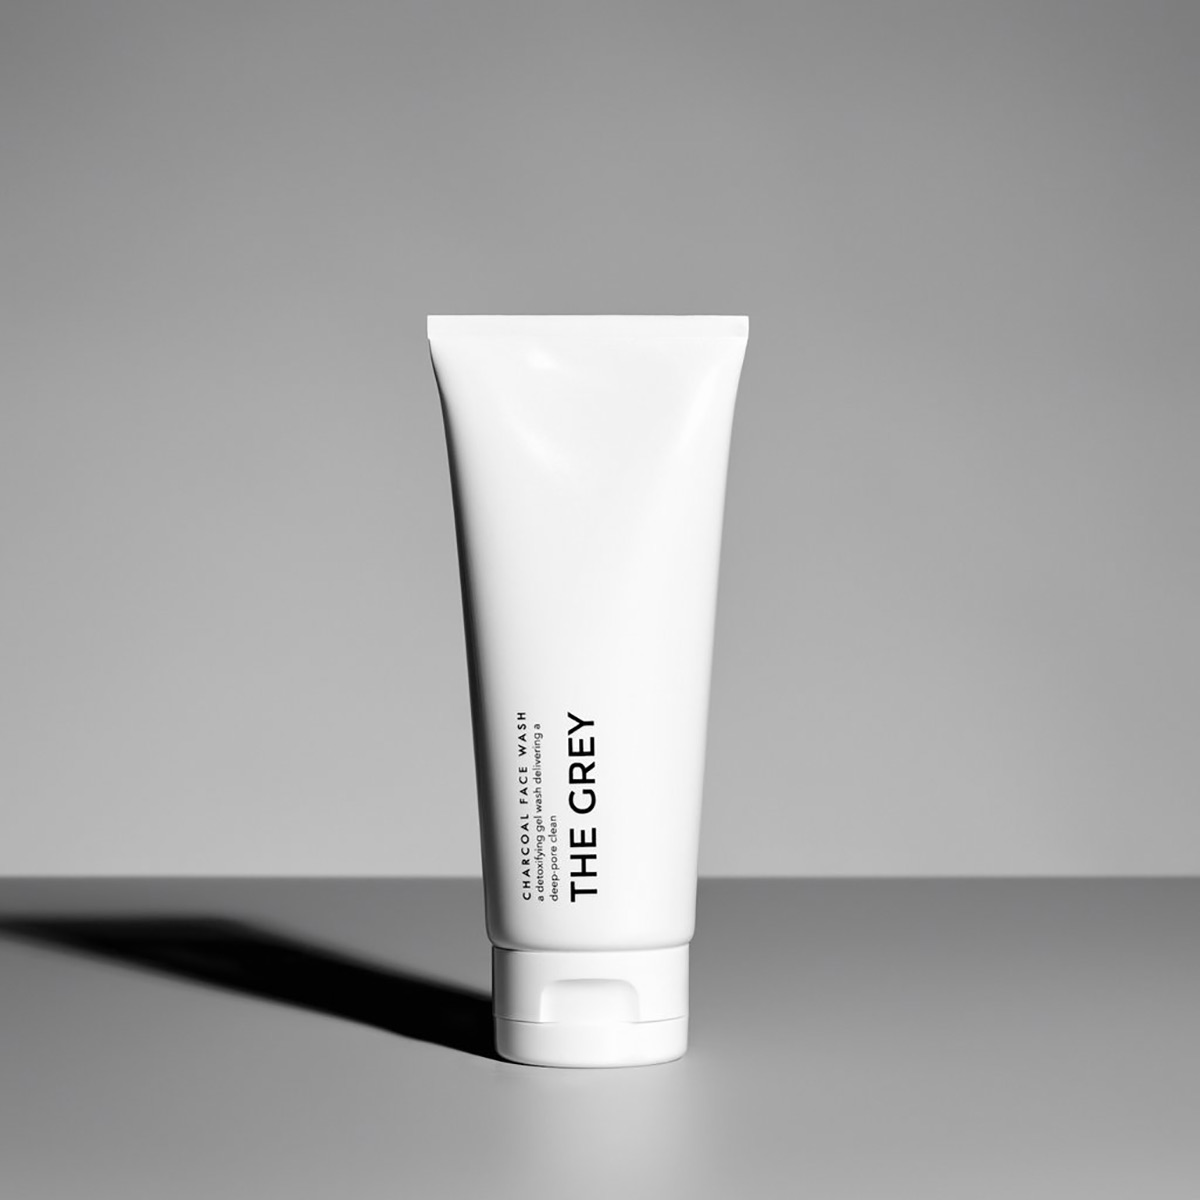 The Grey Mens Skincare Face Wash